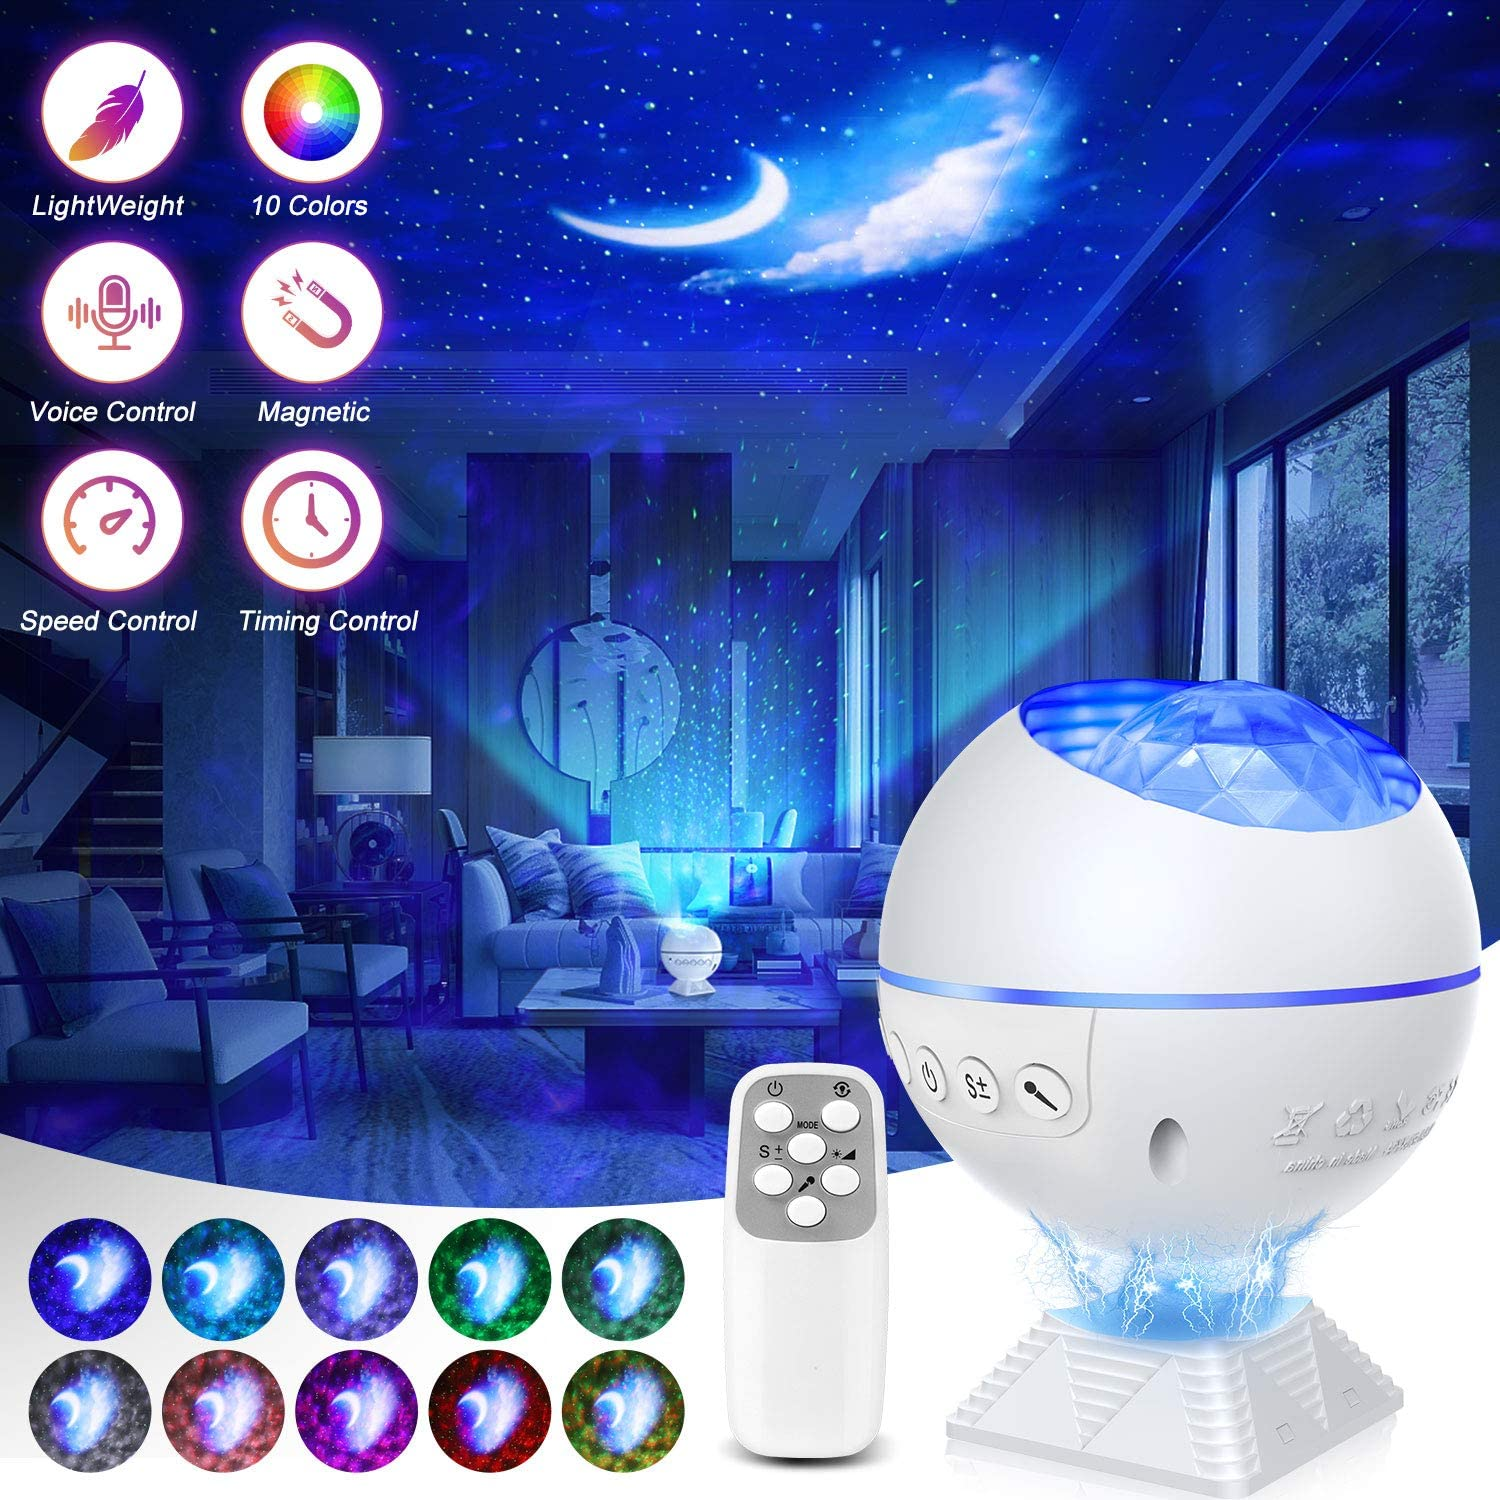 Galaxy Projector 3 in 1 Ocean Wave Night Light Star Projector with Remote Control Voice Control, Nebula Cloud Mini 360 Pro Light Projector for Bedroom Ceiling Car Kid Adult Gift with 43 Light Modes